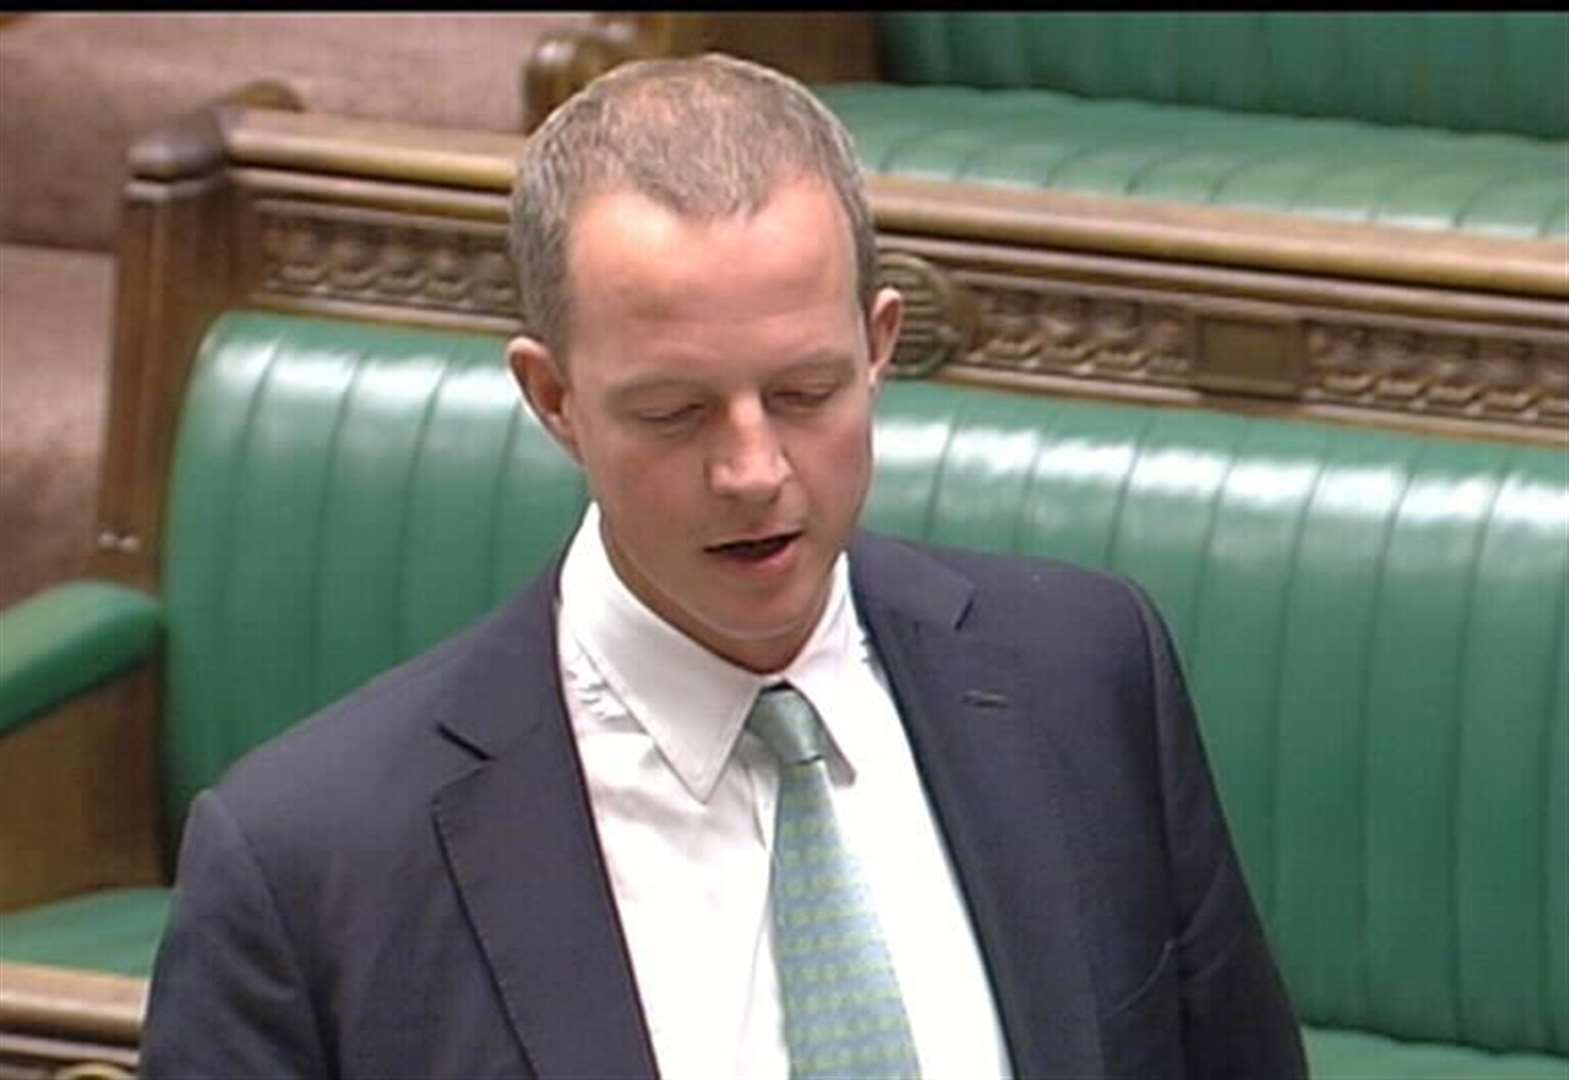 What has Stamford MP Nick Boles done to block a 'No Deal' Brexit today